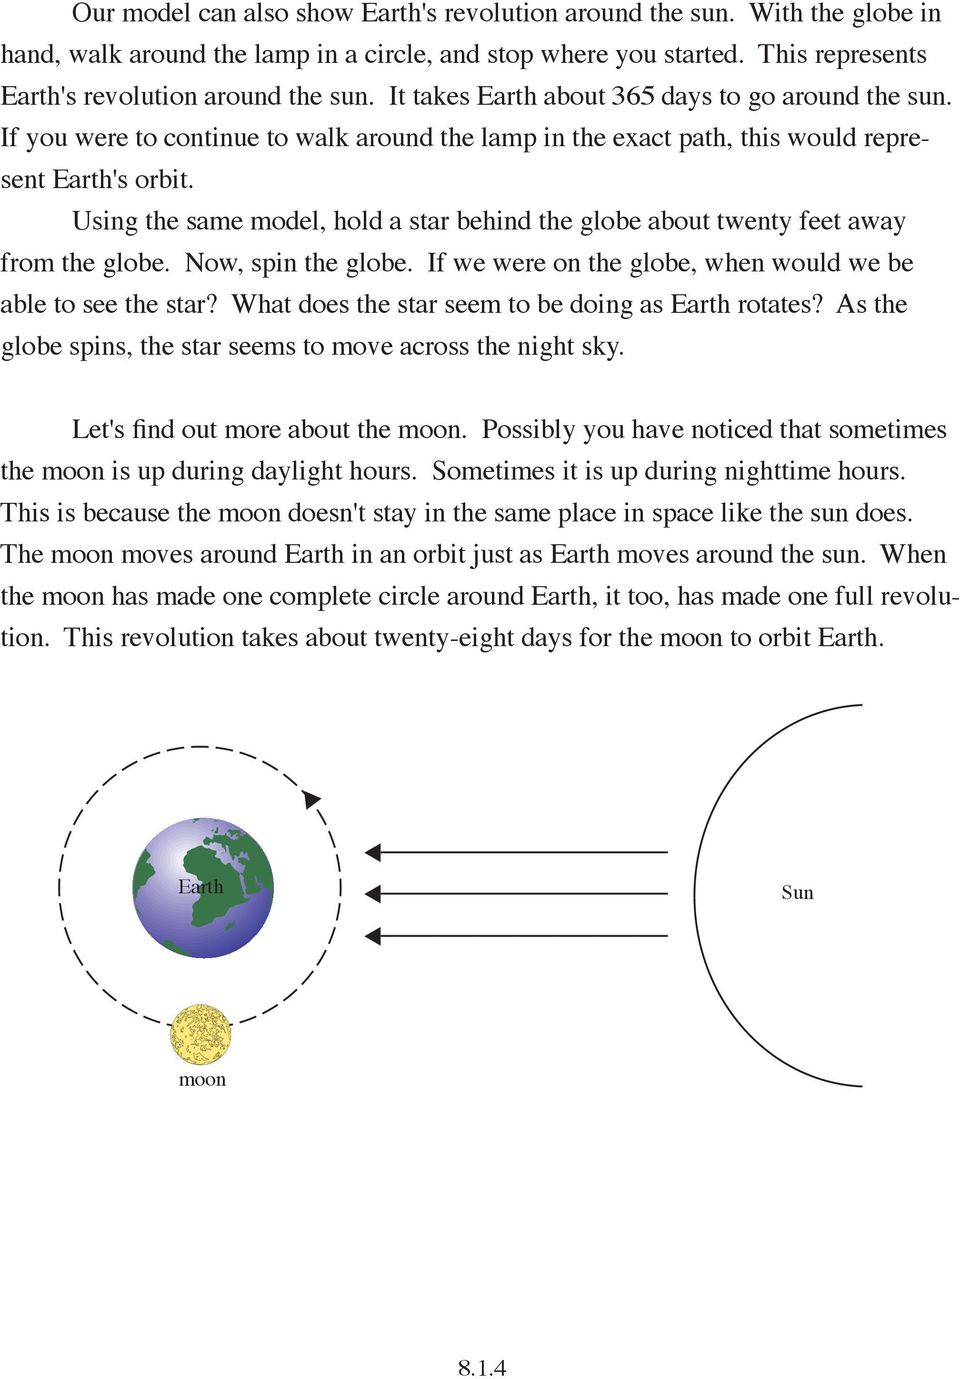 Using the same model, hold a star behind the globe about twenty feet away from the globe. Now, spin the globe. If we were on the globe, when would we be able to see the star?